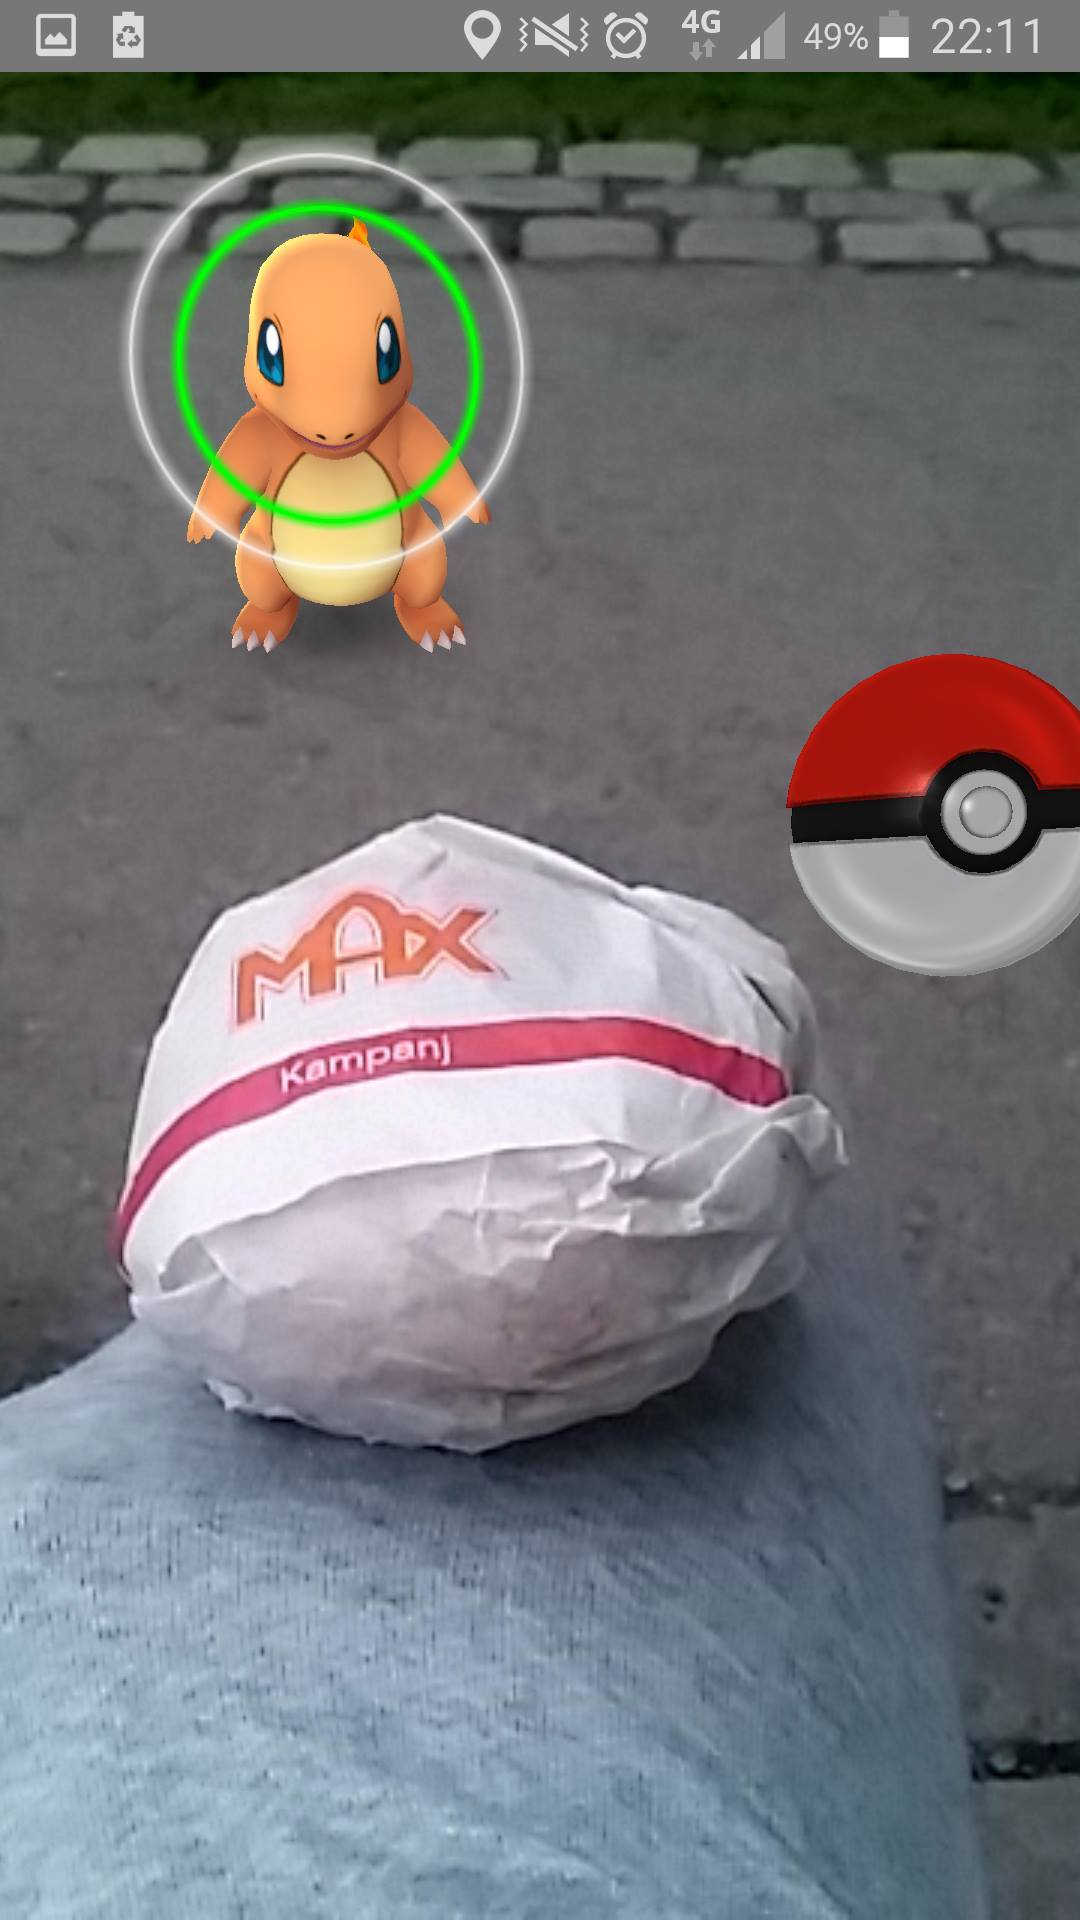 Max, O'Learys, and Pokemon!